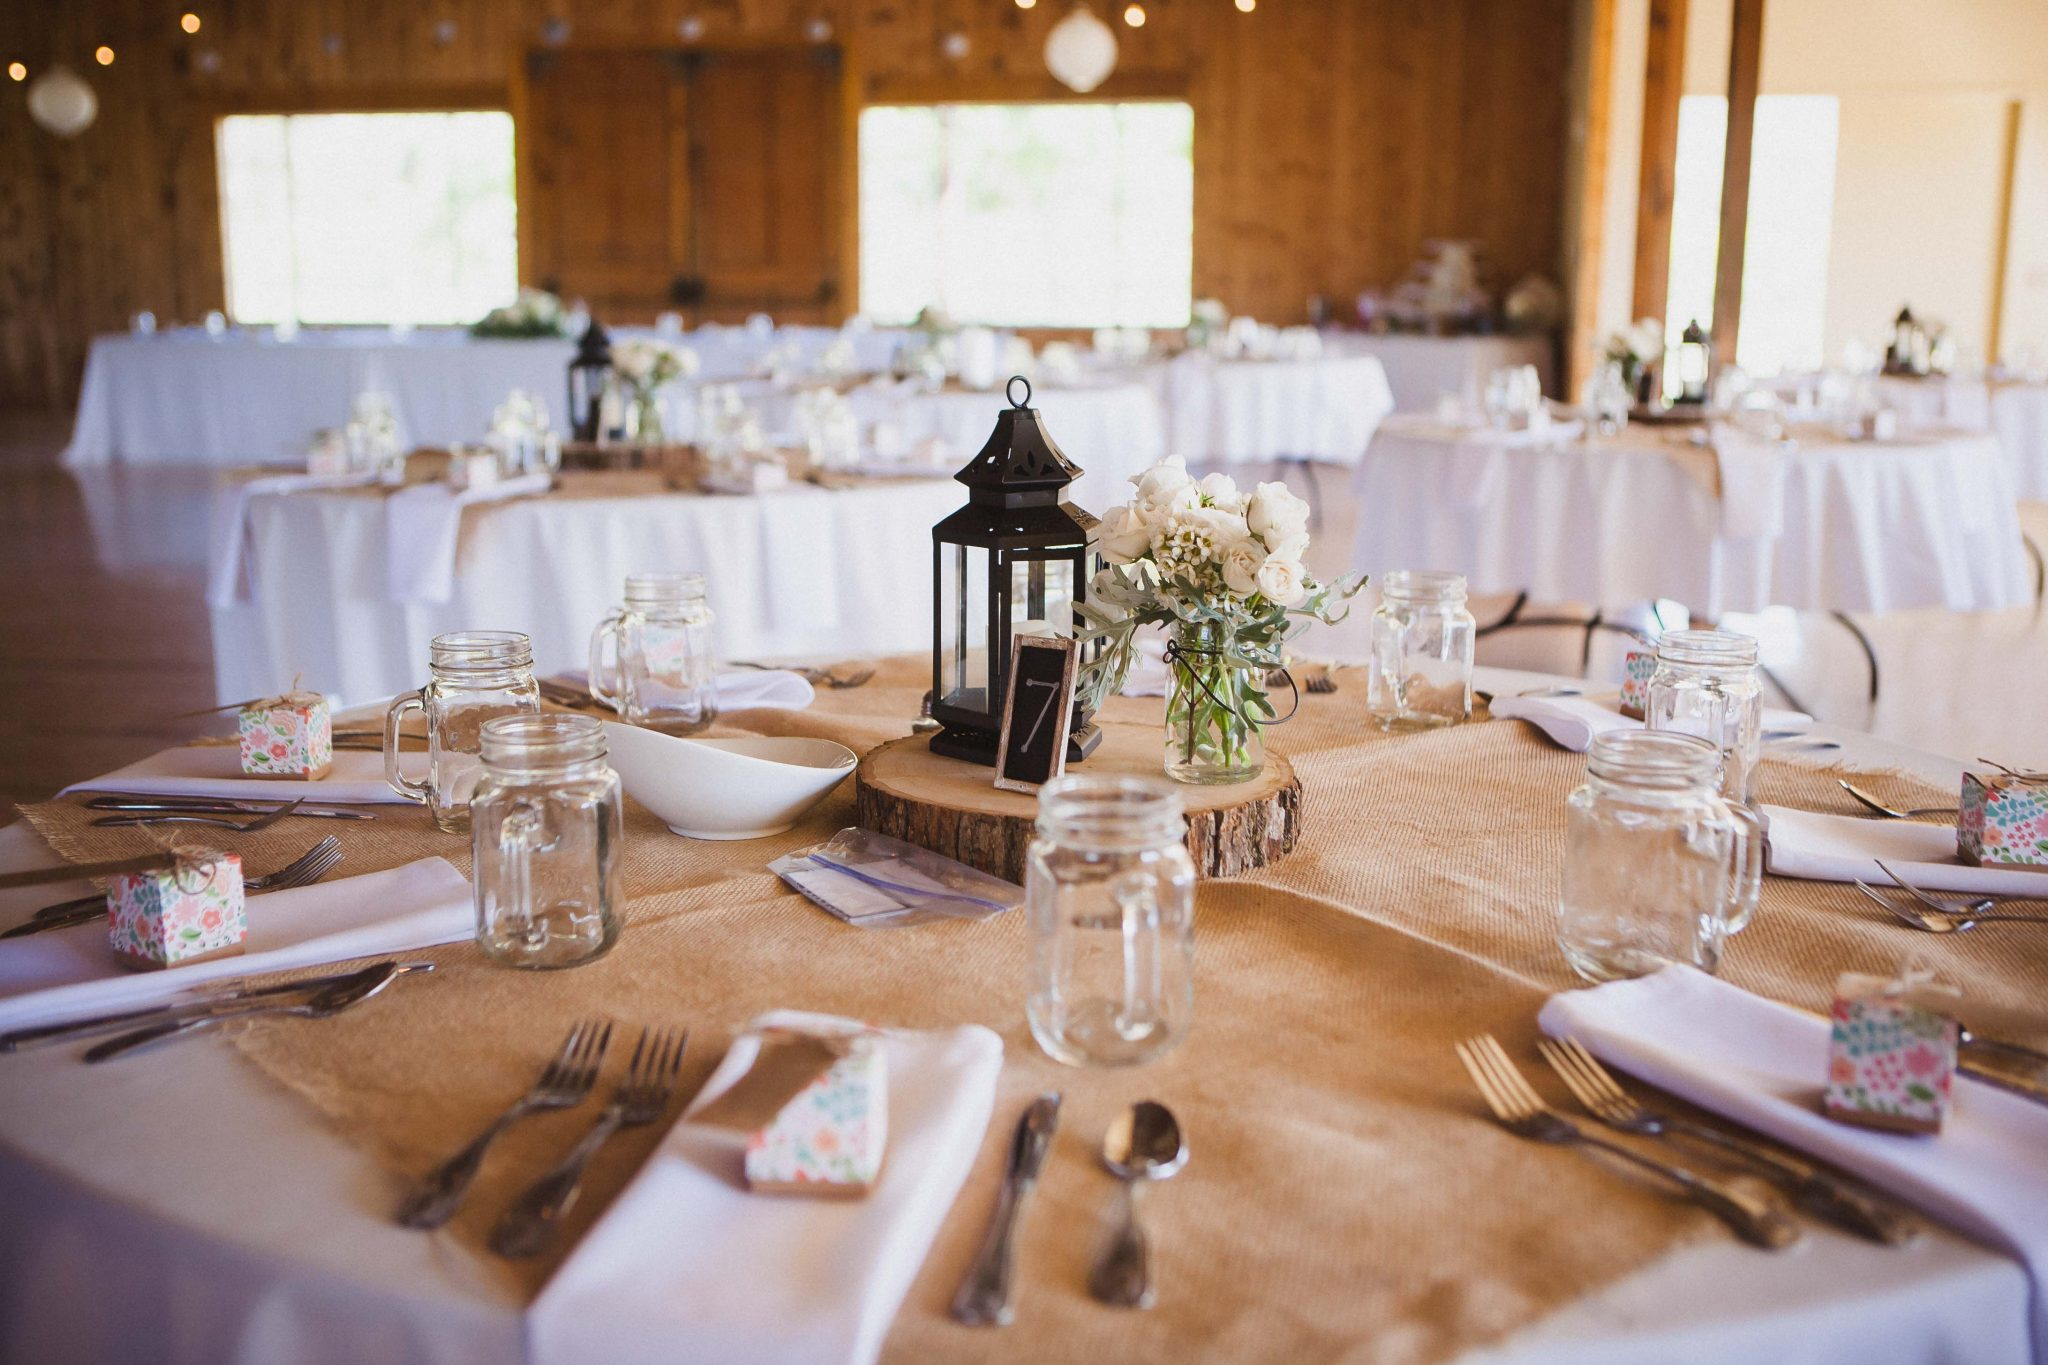 Burlap table runner detail on the tables at a wedding reception